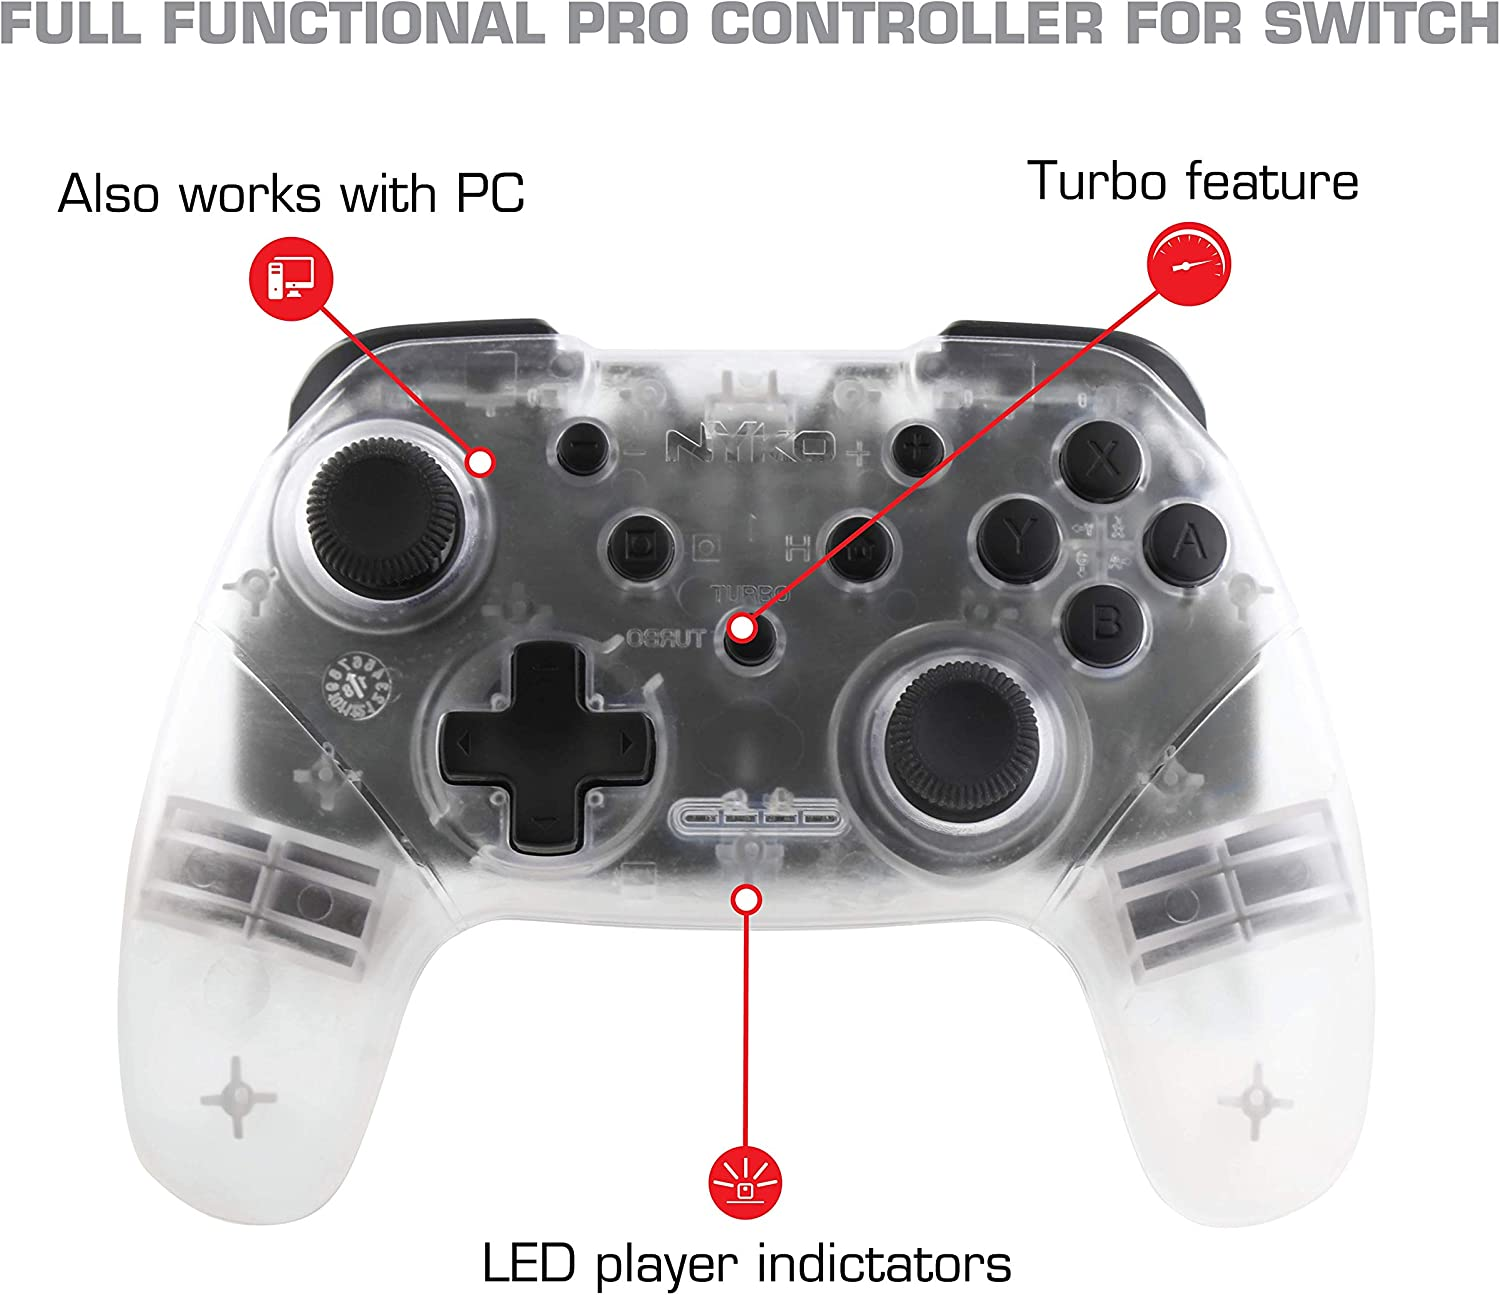 Nyko Wireless Core Controller - Bluetooth Pro Controller Alternative with Turbo and Android/PC Compatibility for Nintendo Switch - Claire [video game]: Amazon.es: Videojuegos